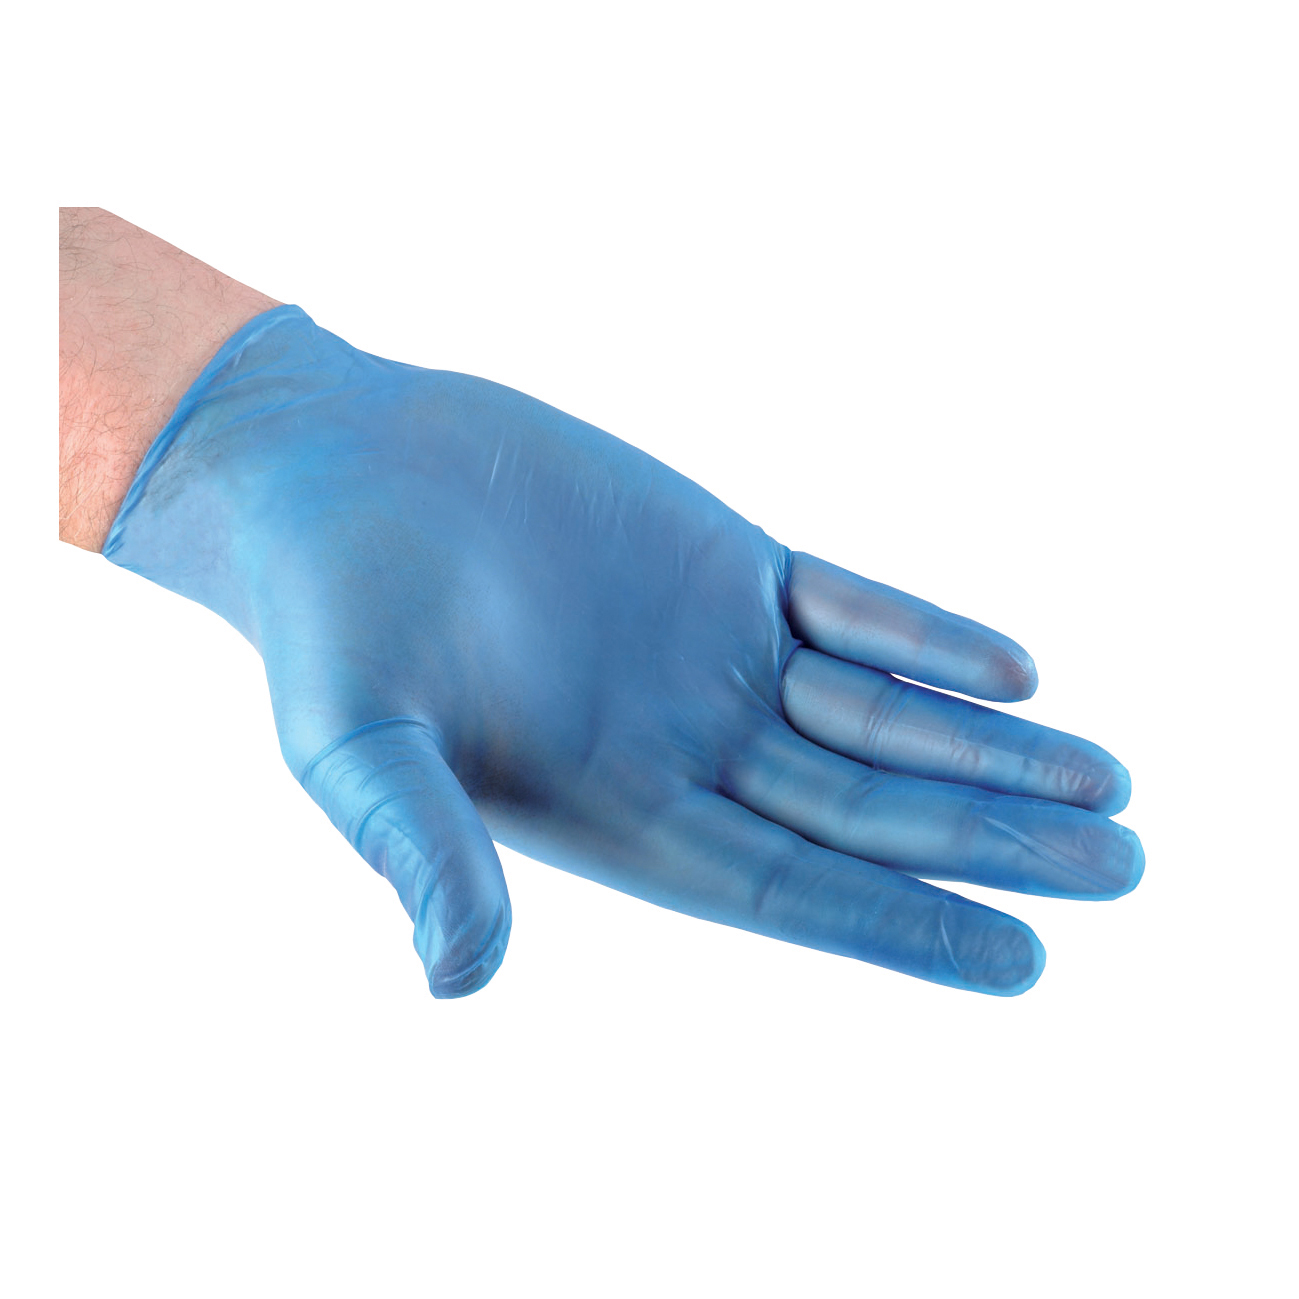 Vinyl Gloves Powdered Large Blue [50 Pairs]